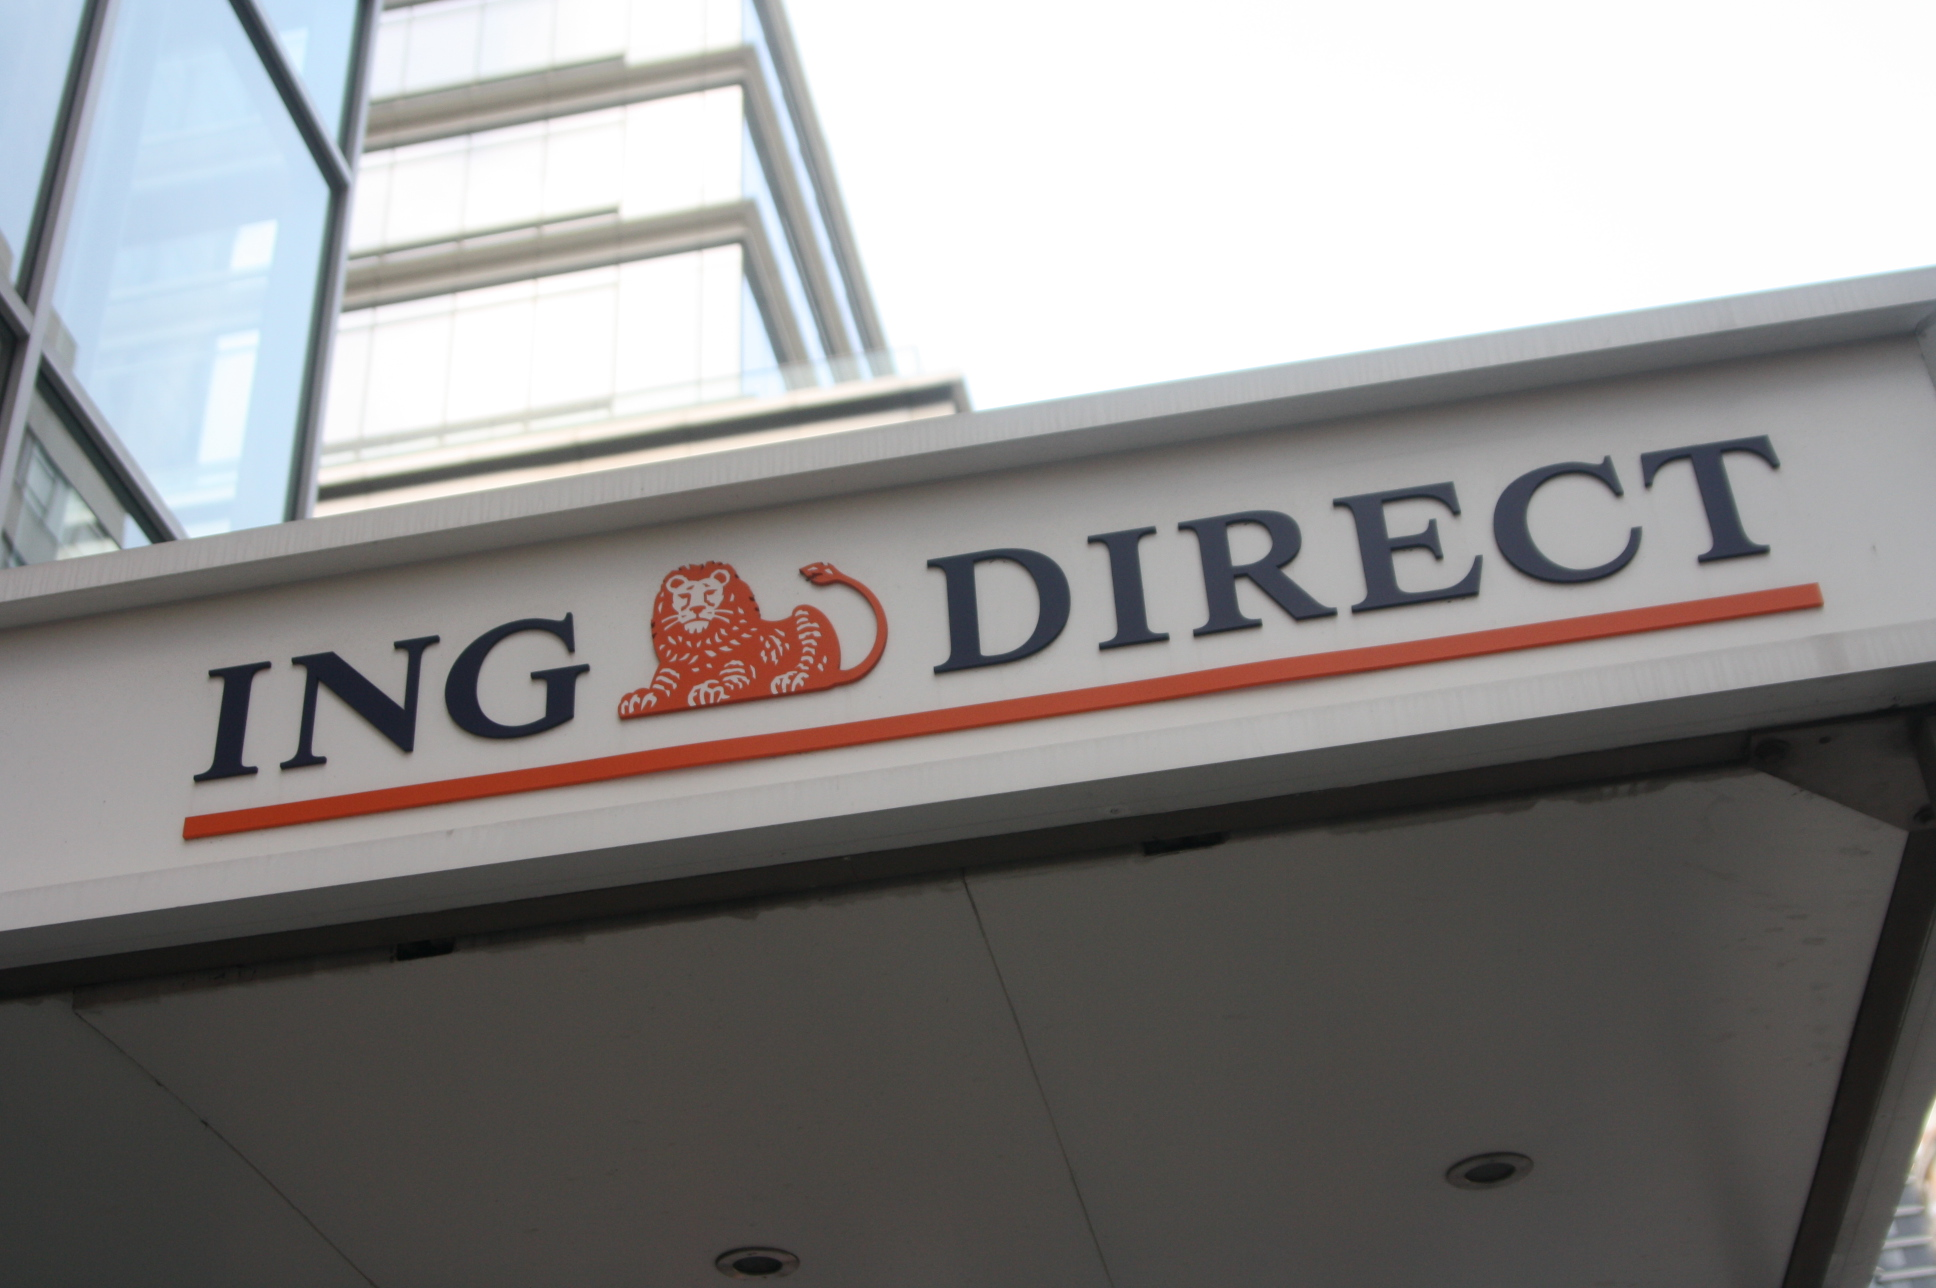 ING Direct - Insegna Imc